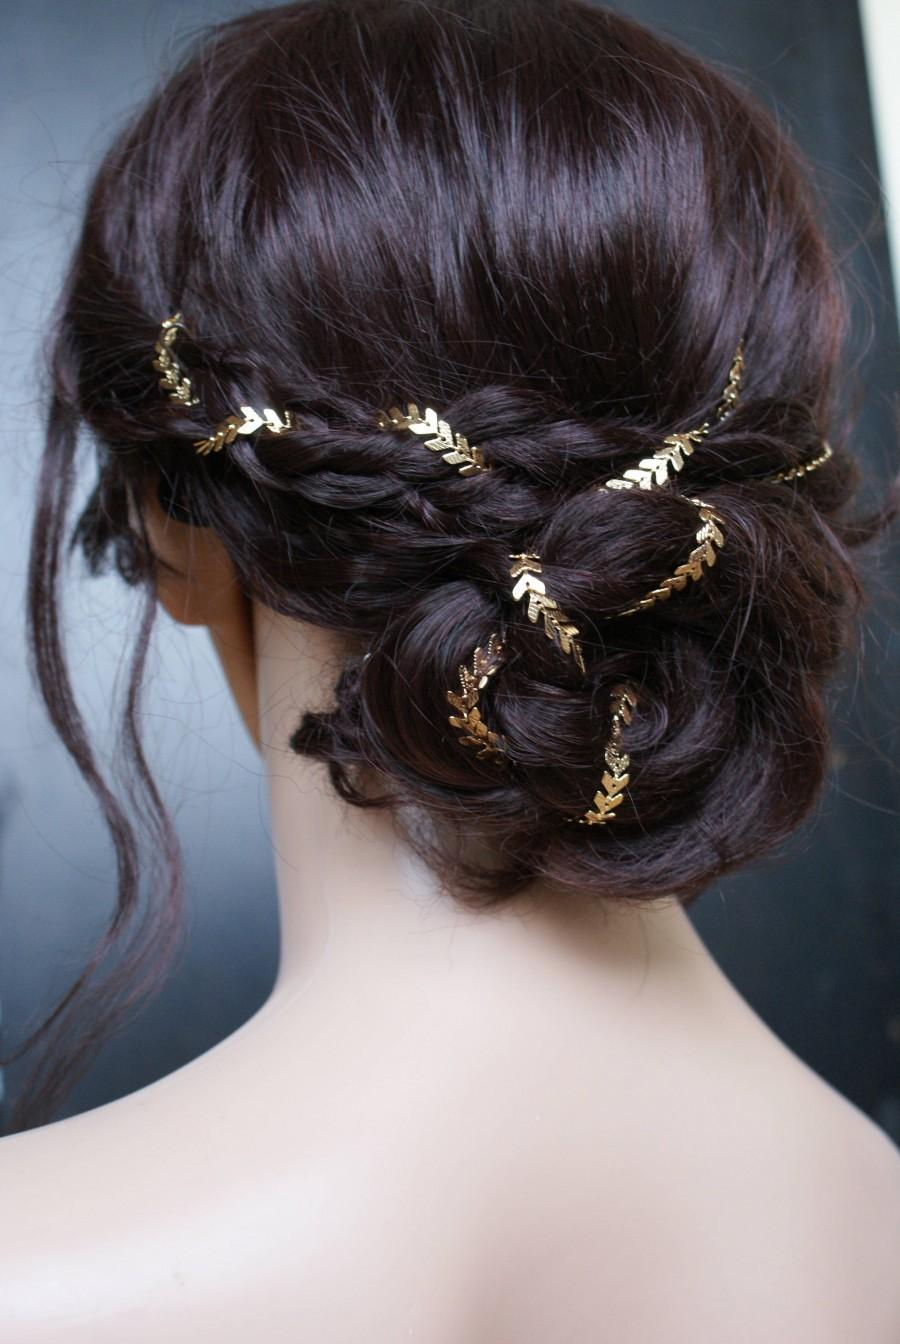 Свадьба - Bridal headpiece in Gold - Wedding Hair Accessory for back of head - Gold Hair chain - 1930s Wedding Dress - Bohemian Bridal Hair Accessory